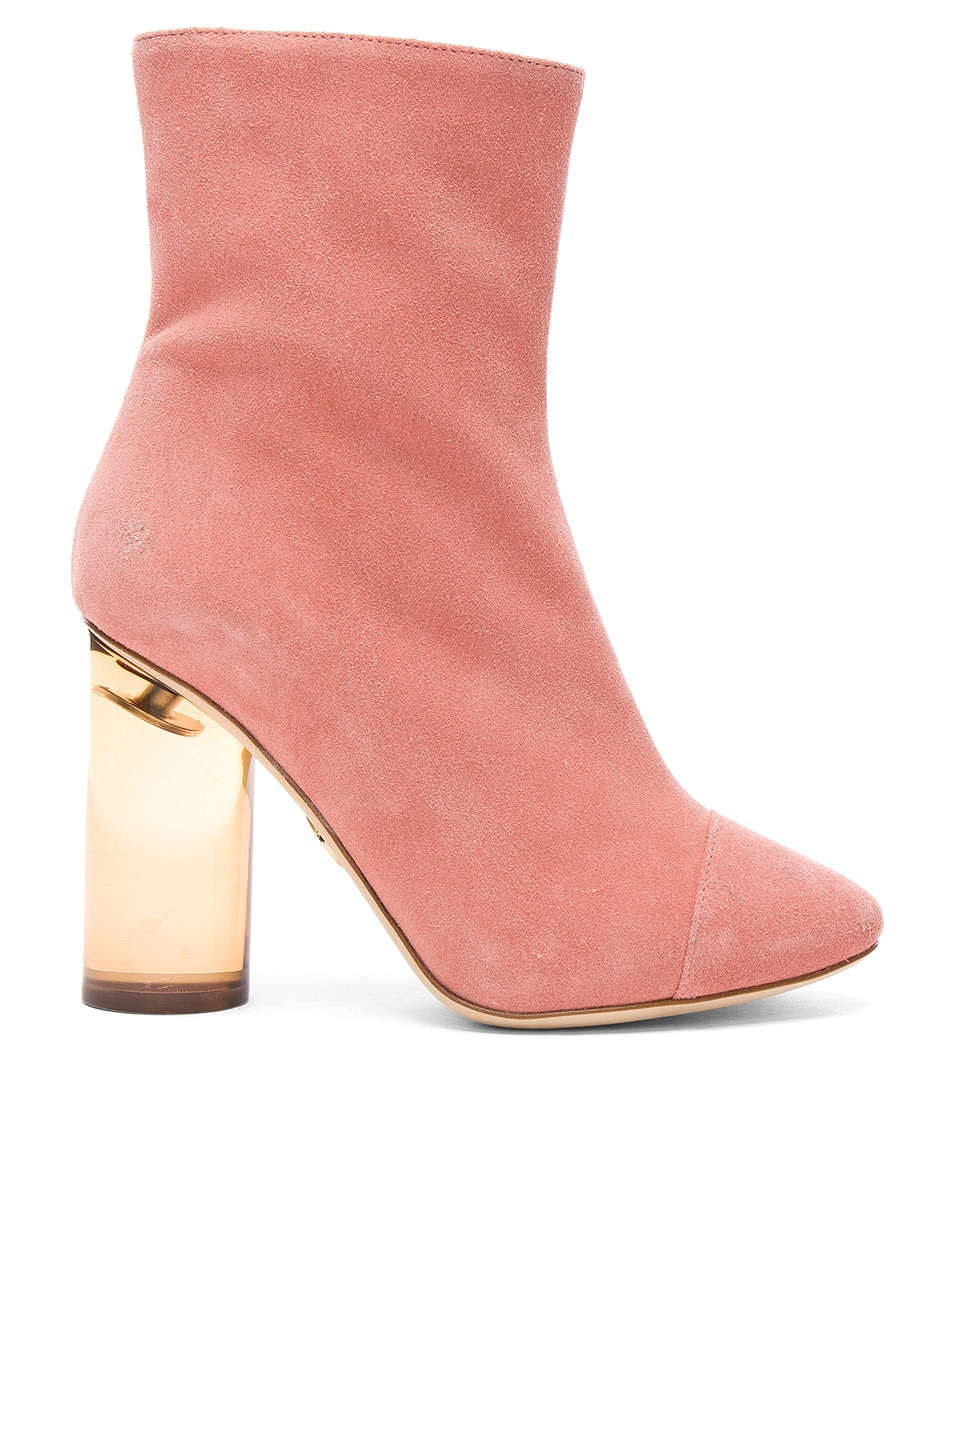 Image 1 of Brother Vellies Suede Bianca Boots in Dusty Rose Suede